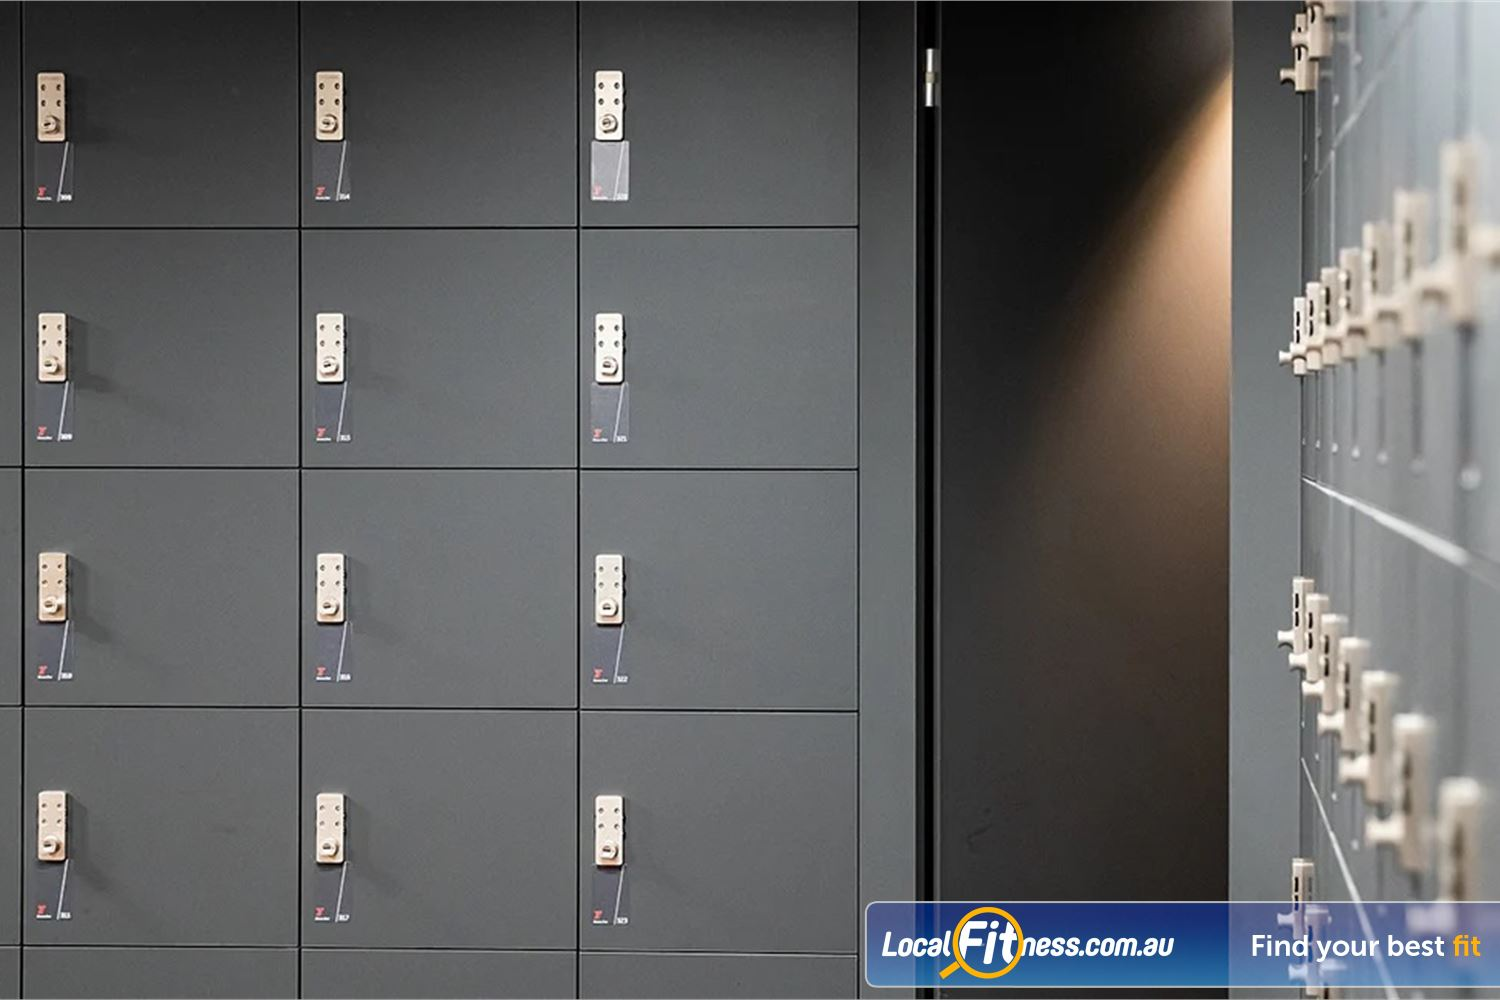 Fitness First Platinum Pitt St Sydney Exclusive storage lockers for our members and guest.